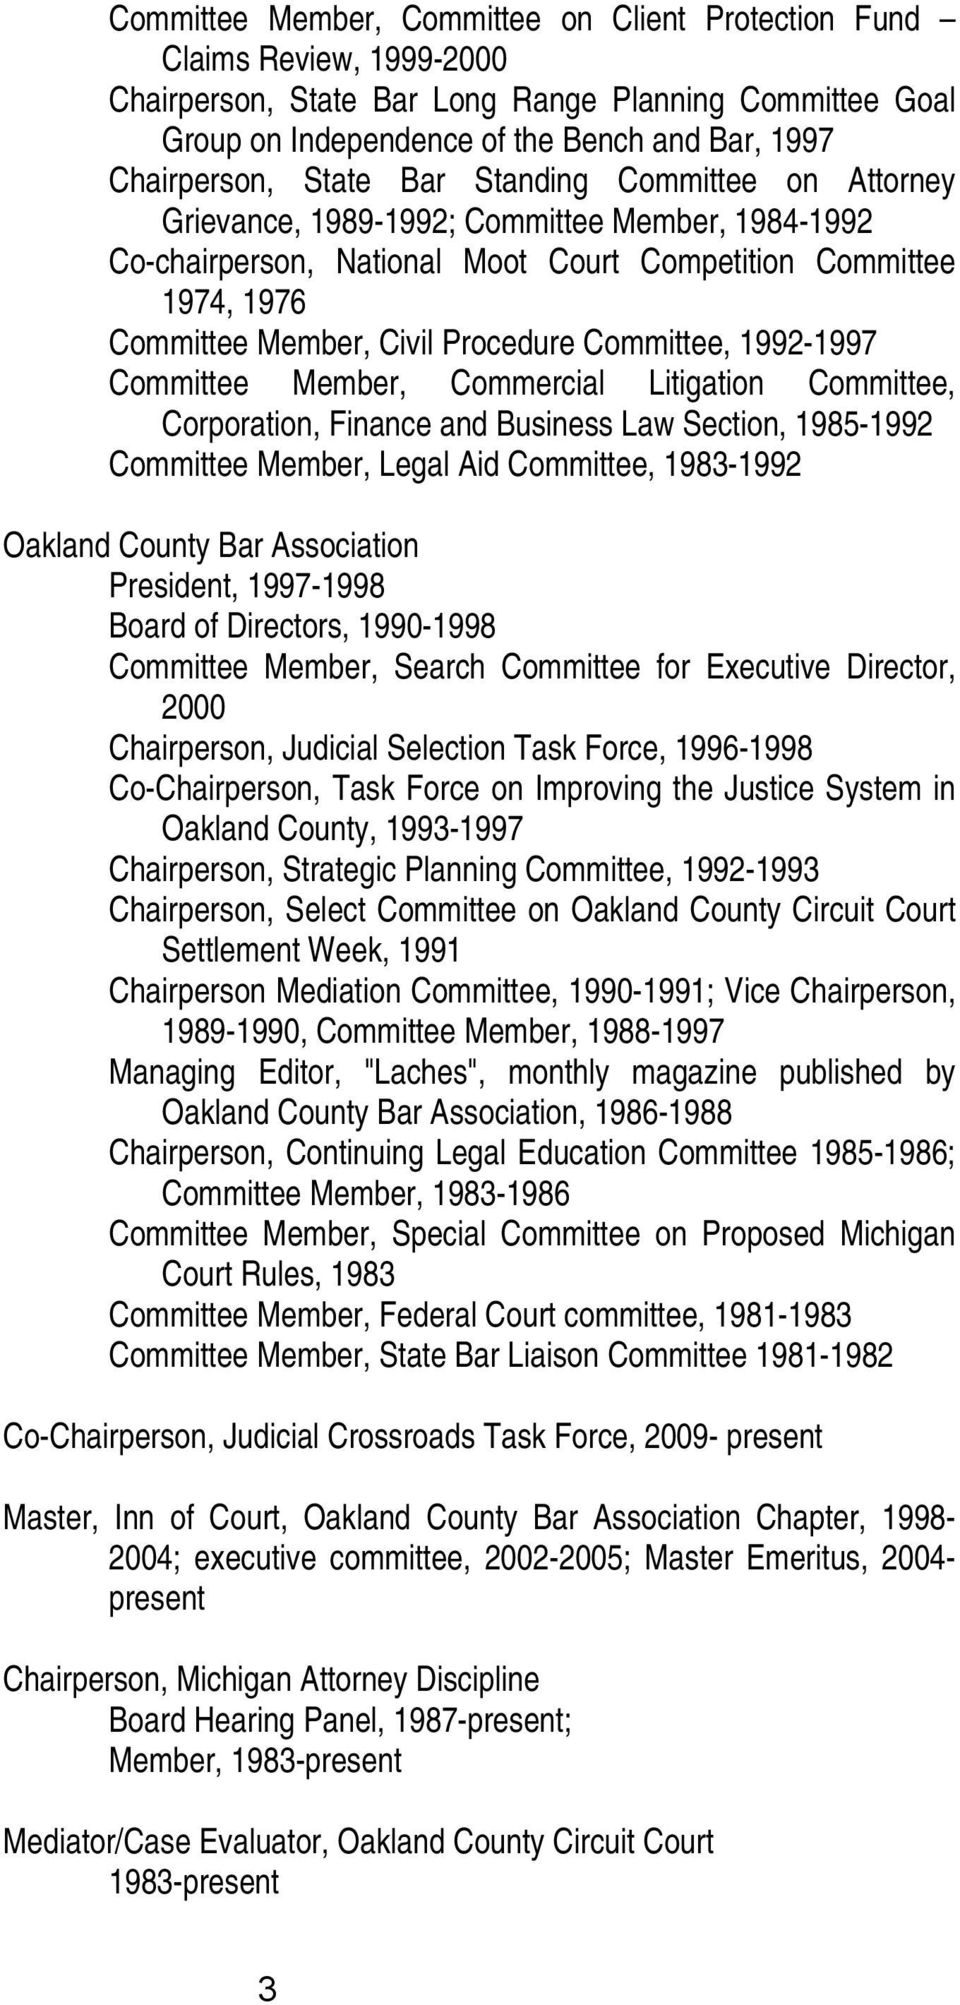 Committee, 1992-1997 Committee Member, Commercial Litigation Committee, Corporation, Finance and Business Law Section, 1985-1992 Committee Member, Legal Aid Committee, 1983-1992 Oakland County Bar